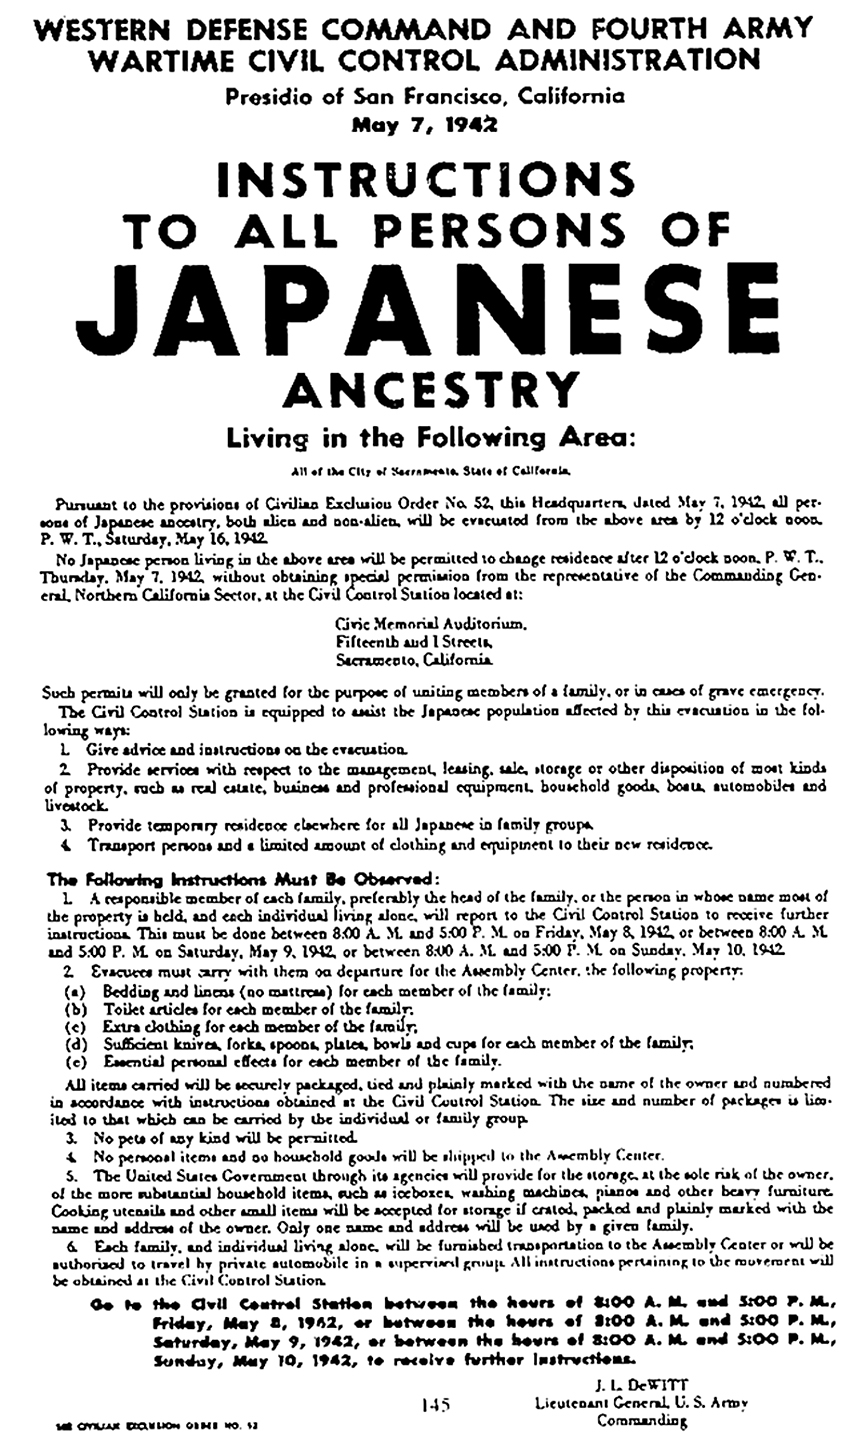 Japanese American Legal History (The Internment) | Greg Leitich Smith